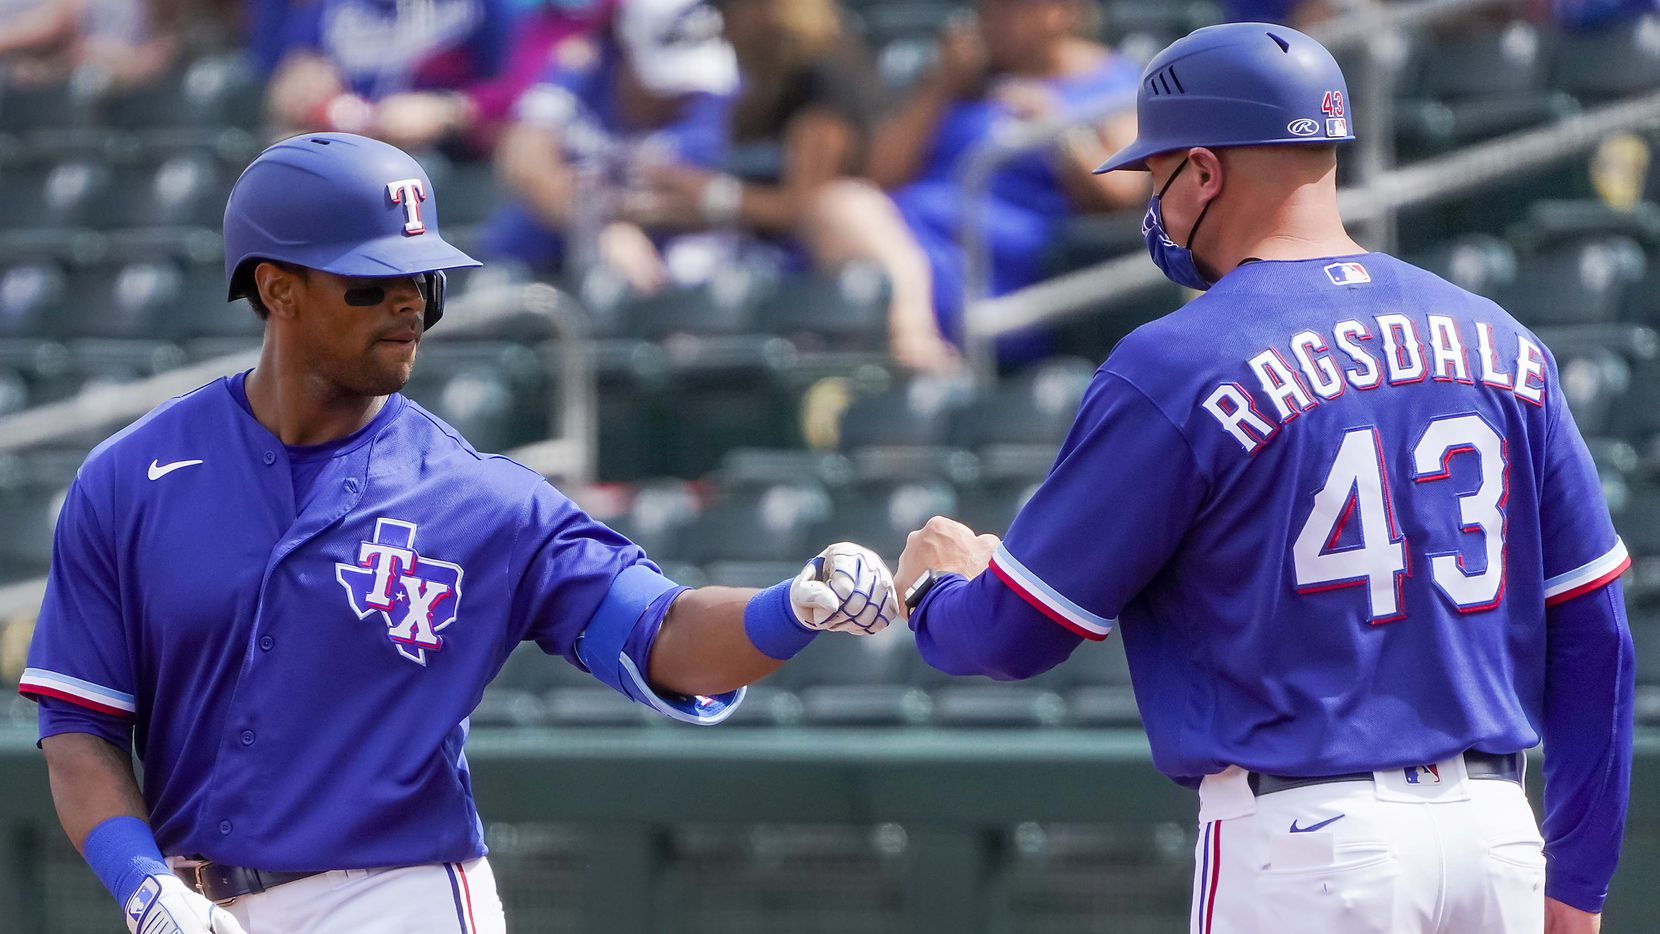 Texas Rangers designated hitter Khris Davis celebrates with  field coordinator/first base coach Corey Ragsdale after picking up his first hit of the spring with a single during the first inning of a spring training game against the Los Angeles Dodgers at Surprise Stadium on Sunday, March 7, 2021, in Surprise, Ariz. (Smiley N. Pool/The Dallas Morning News)